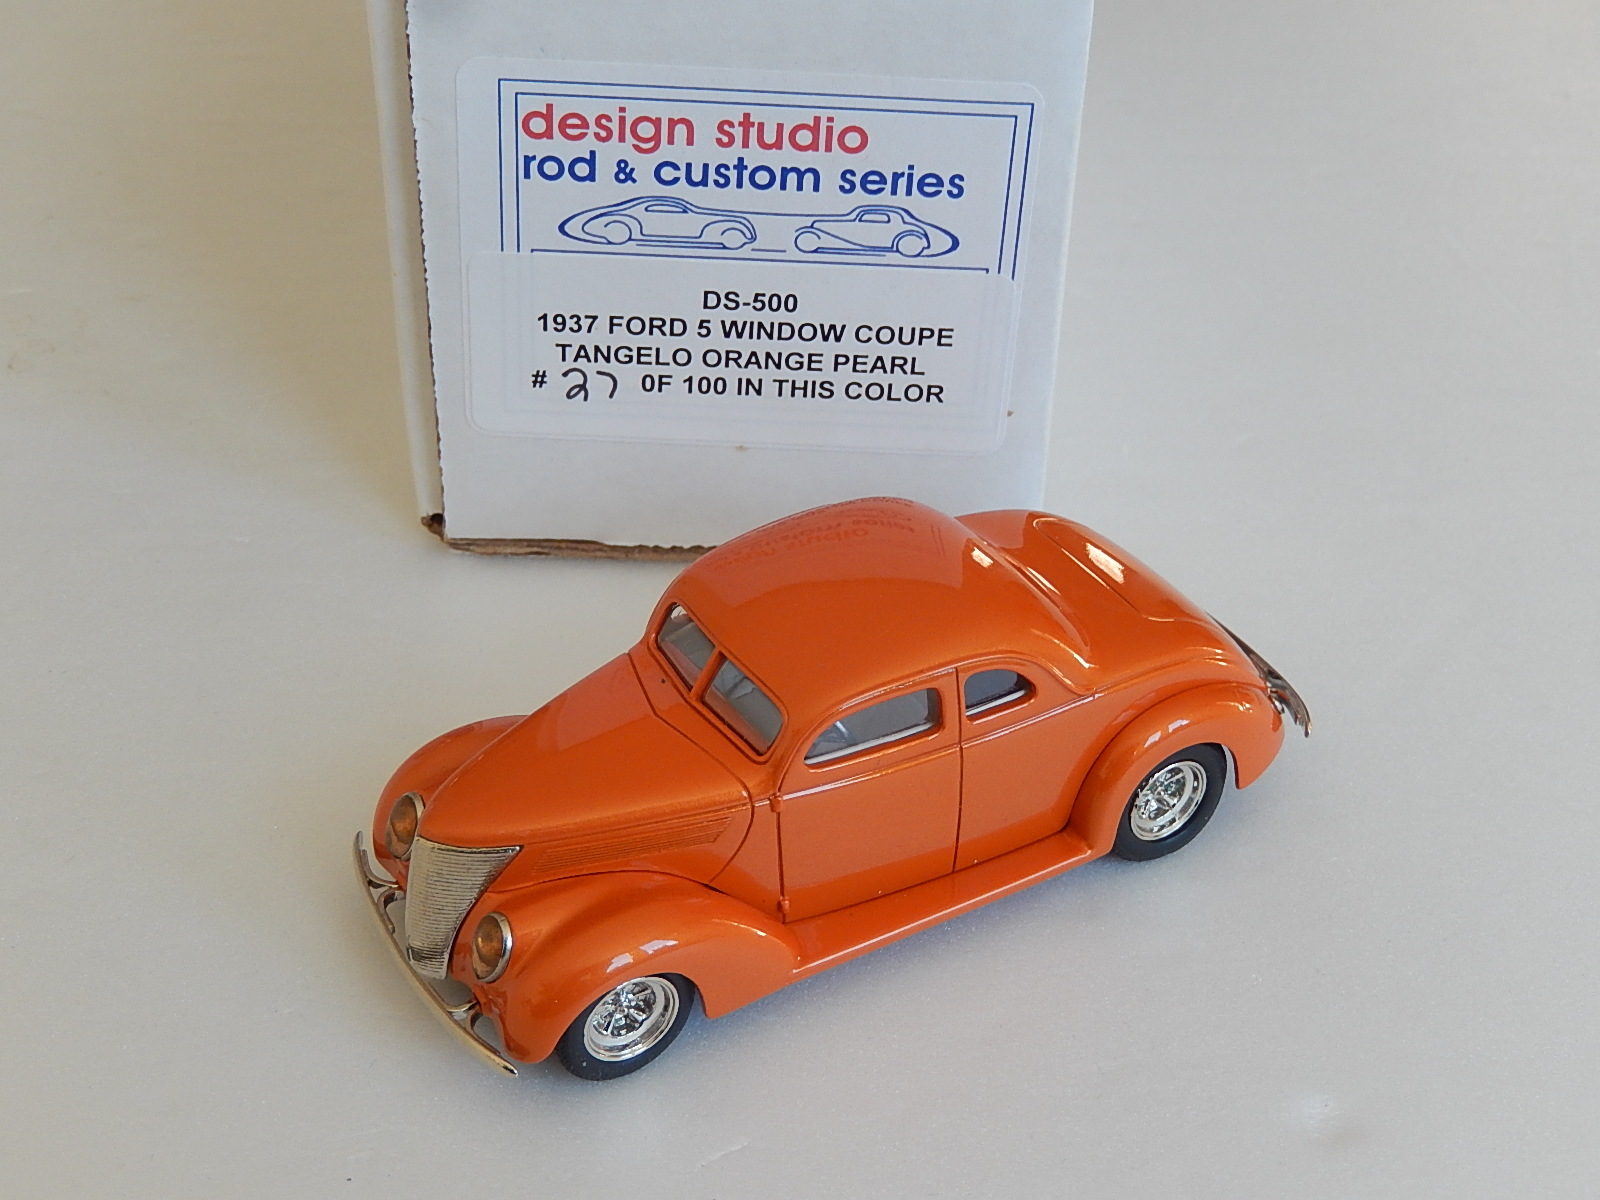 Design Studio : 1937 FORD 5 WINDOW COUPE -> one of the 100